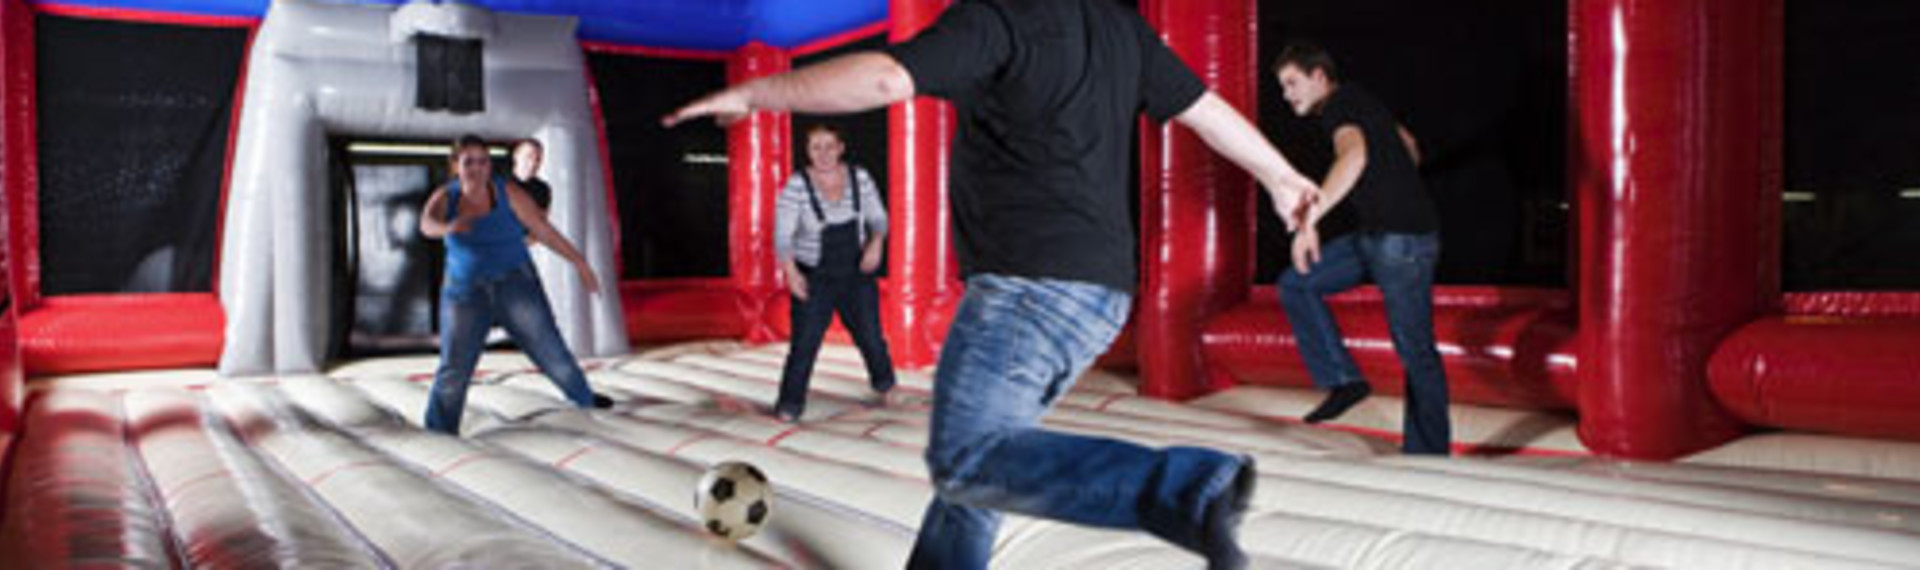 Football in a bouncy castle